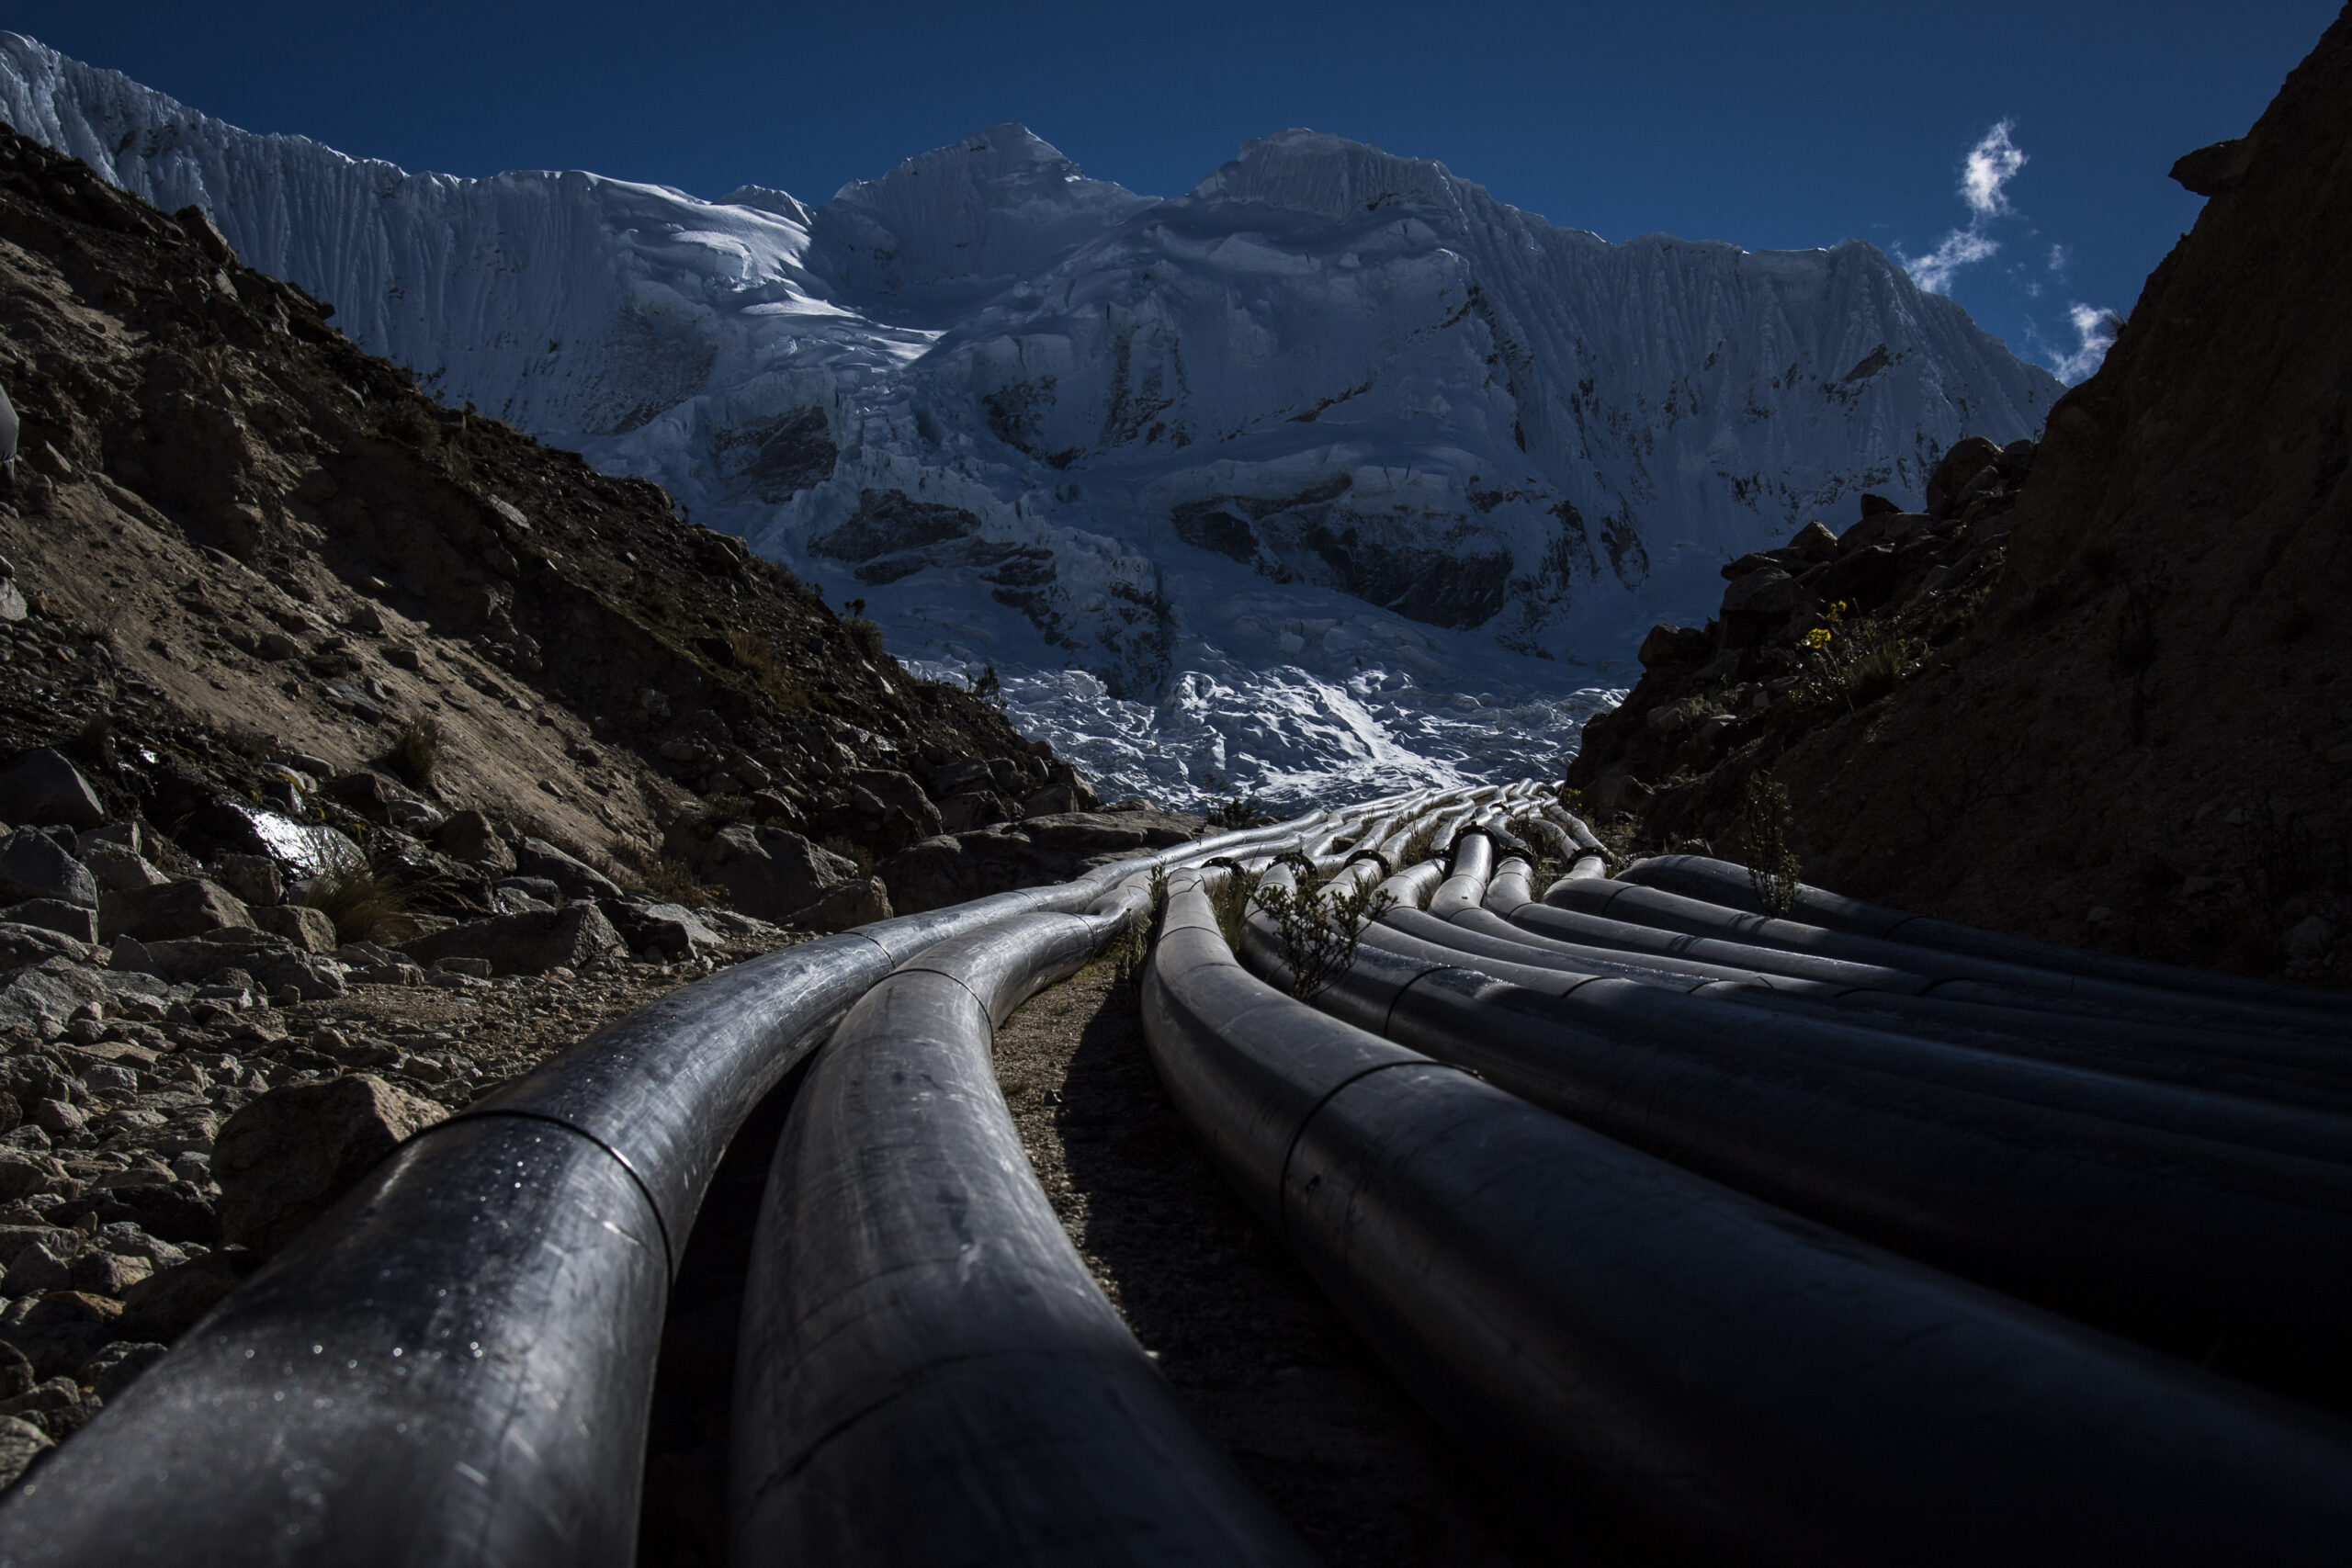 Siphon pipes lead up the mountain to Laguna Palcacocha, a swollen glacial lake in the Andes mountain range in the Ancash Region of Peru on Wednesday, July 12, 2017. The siphons were installed to reduce the volume of the lake and to try and prevent a dam rupture but were damaged in the recent icefall an only two still work. Credit: Jabin Botsford/The Washington Post via Getty Images